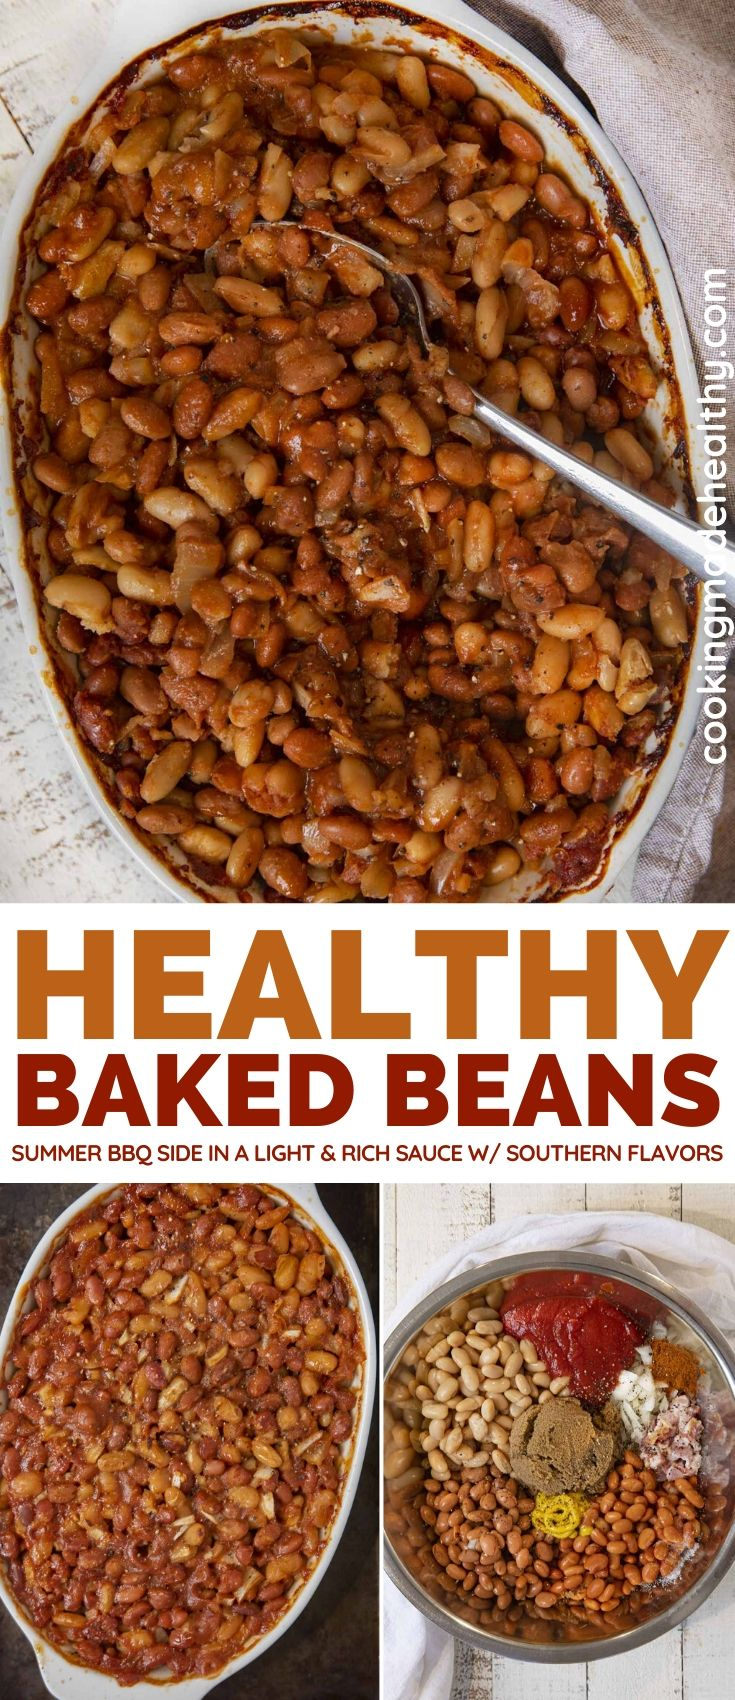 Healthier Baked Beans